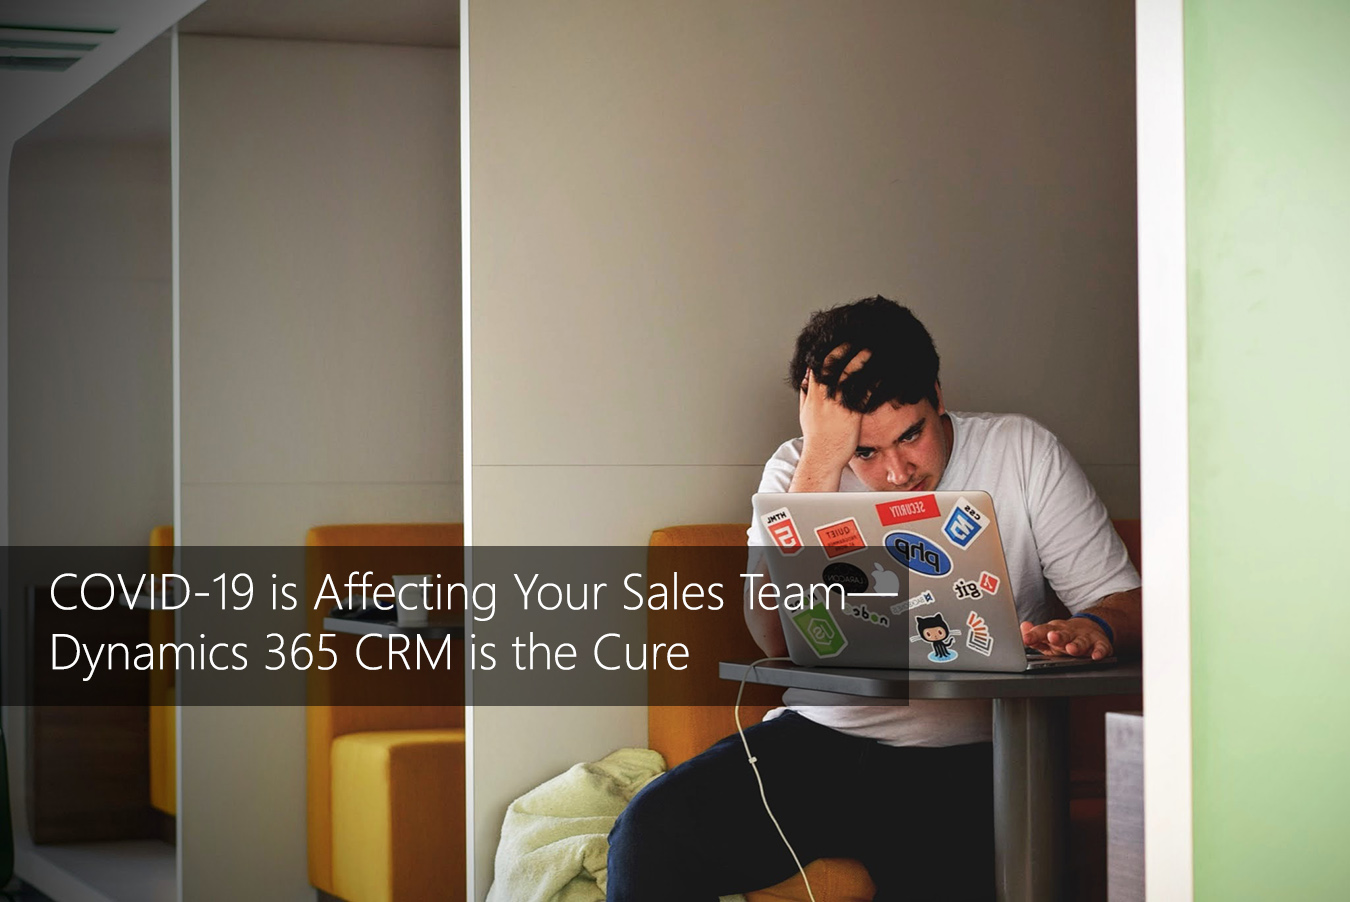 COVID-19 is Affecting Your Sales Team—Dynamics 365 CRM is the Cure